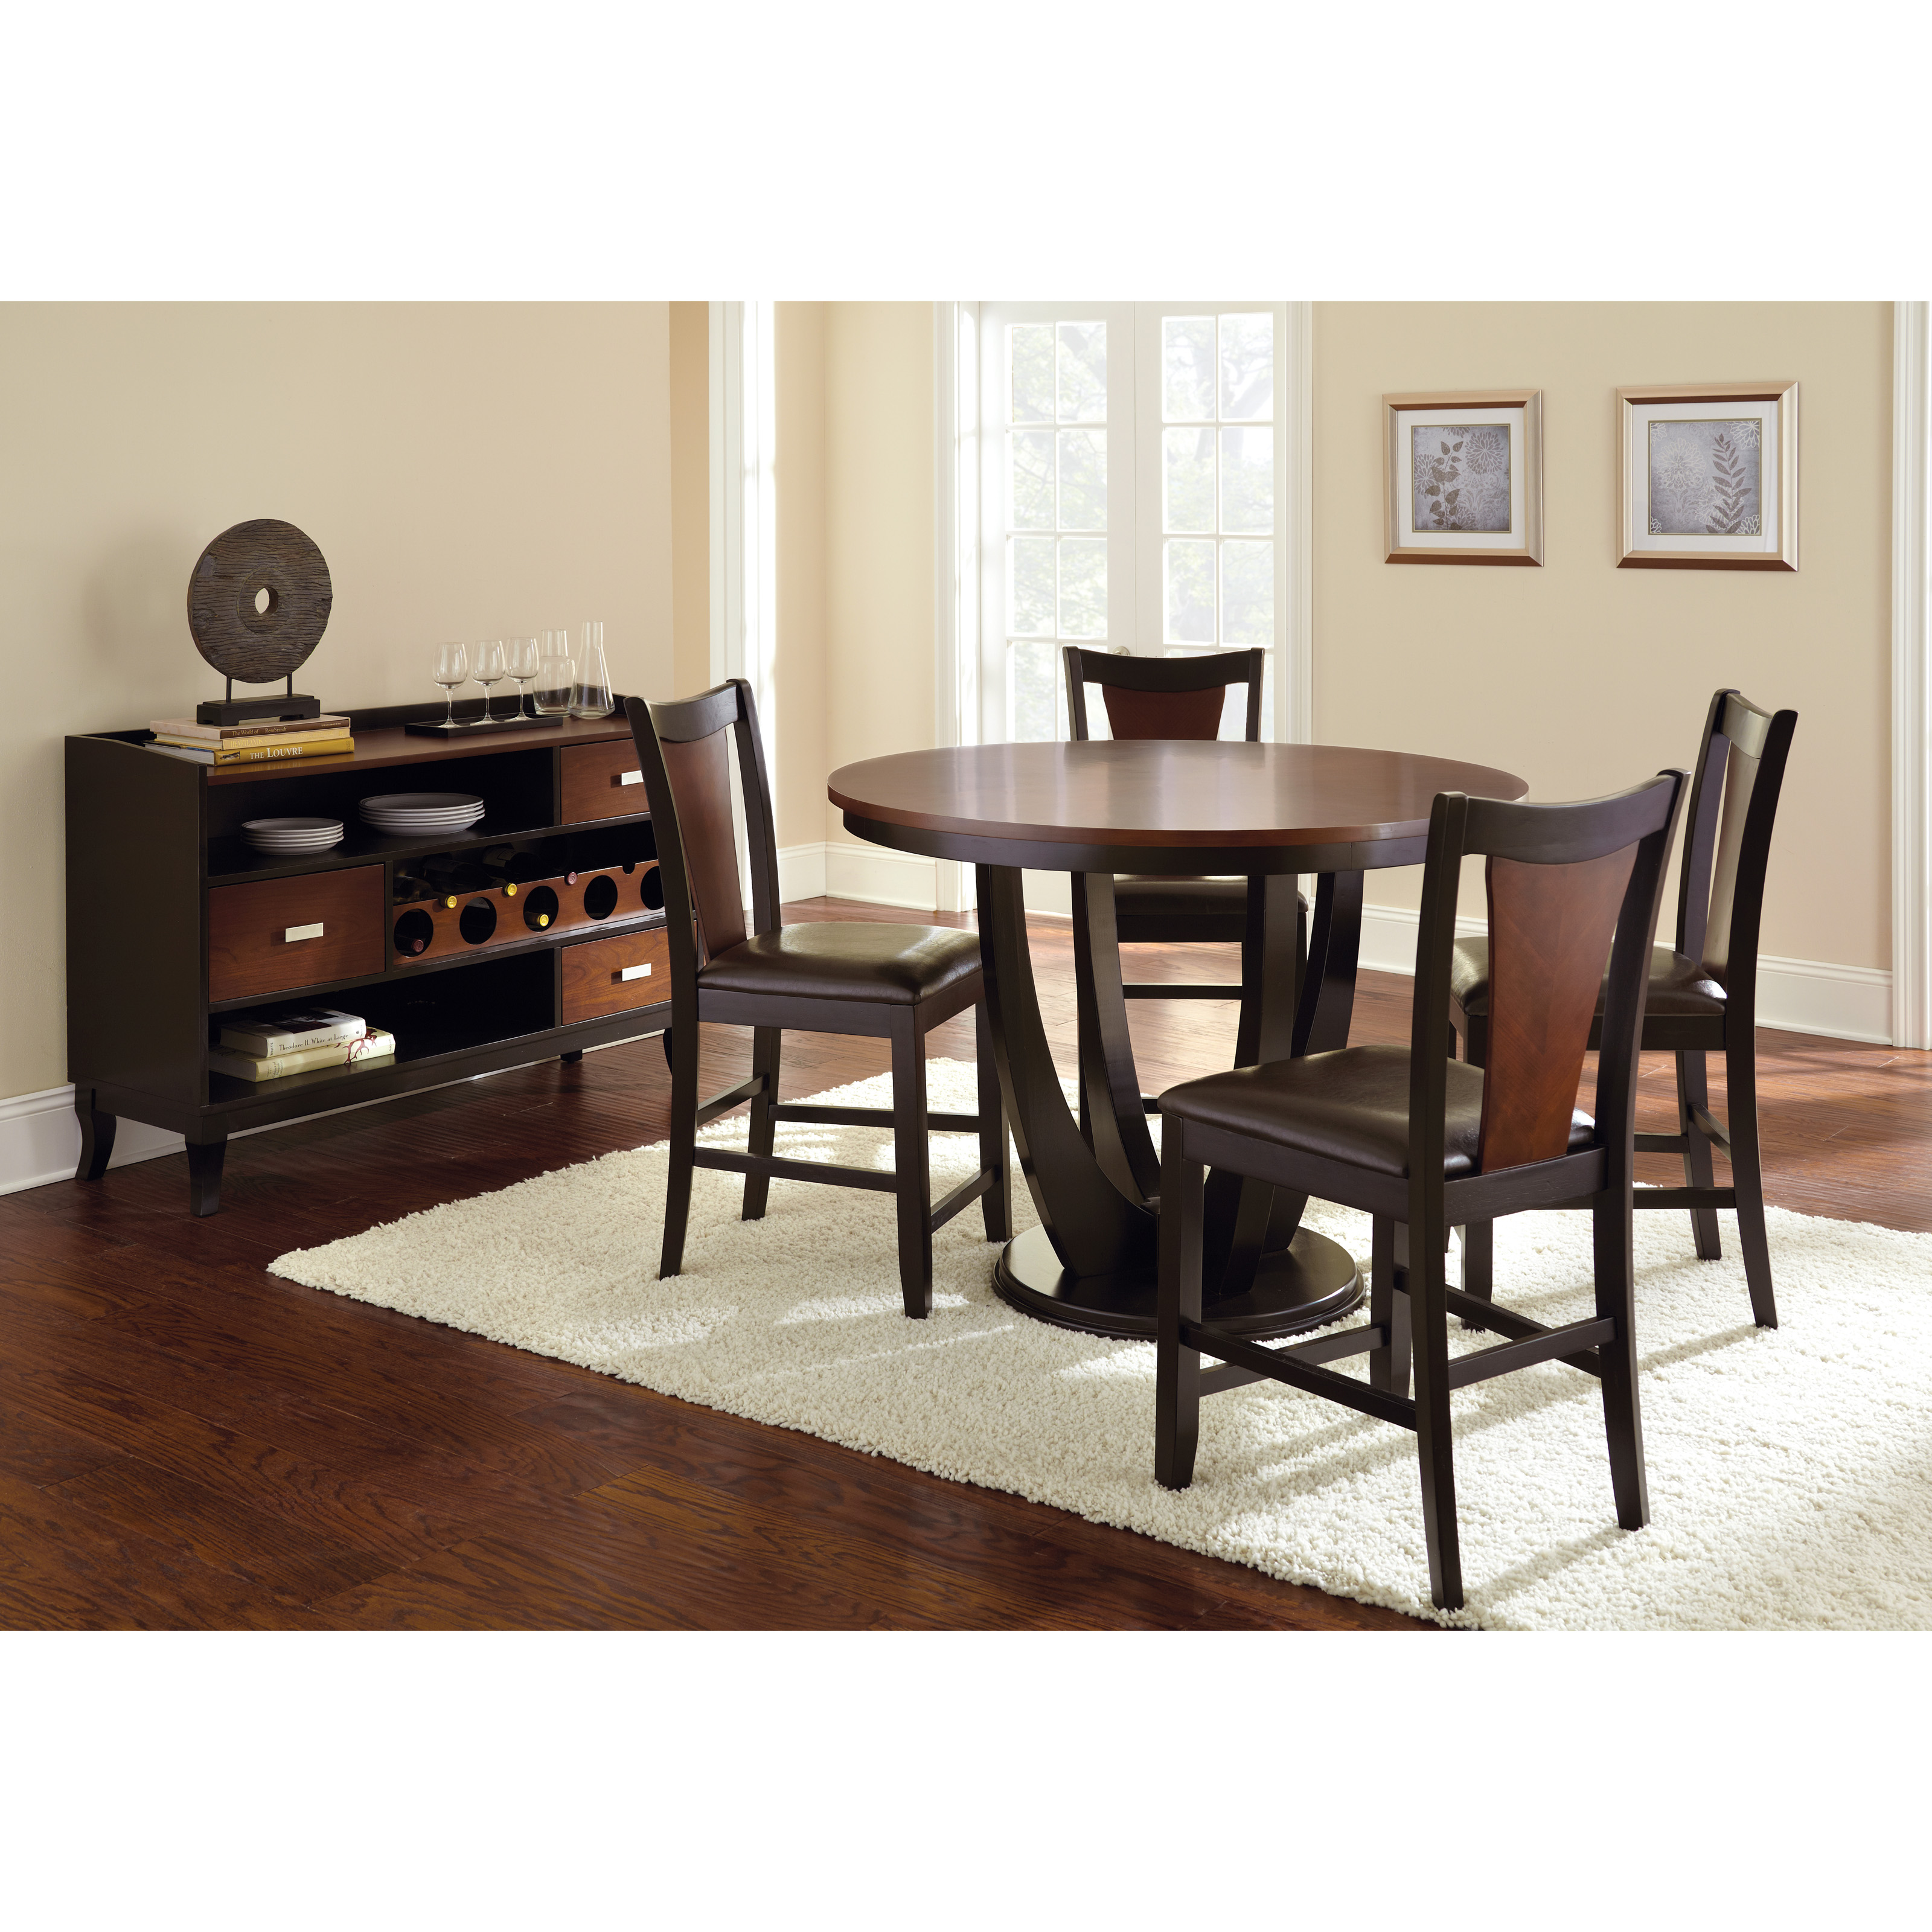 Stanton Counter Height Dining Table In Black: Steve Silver Oakton Counter Height Round Dining Table